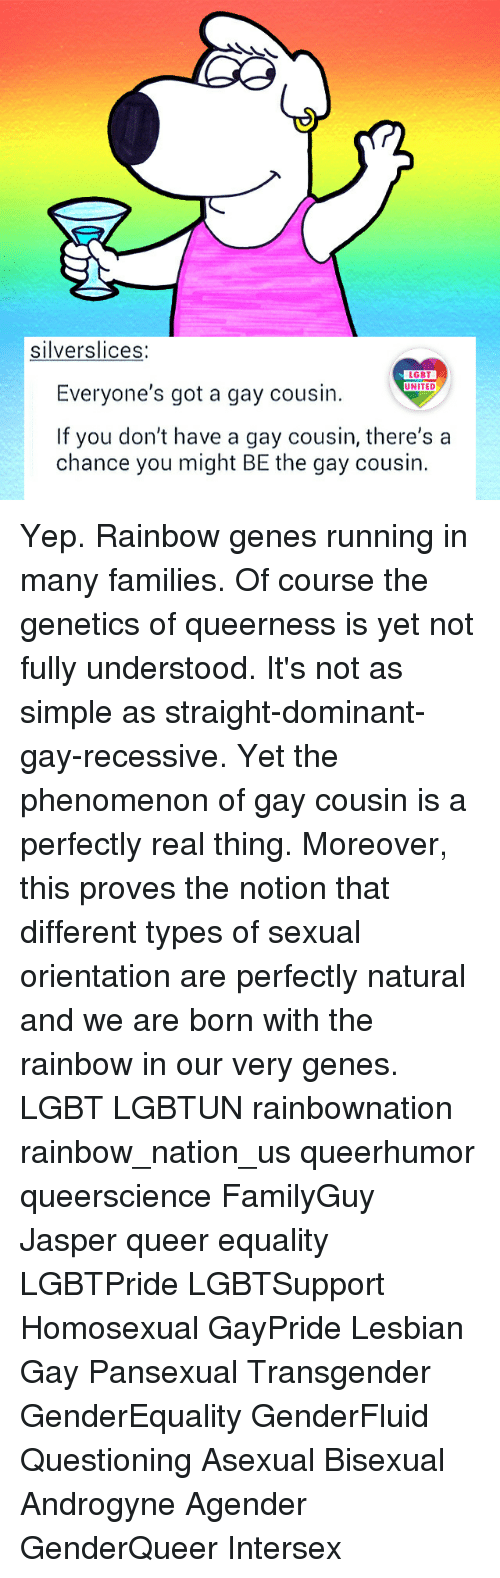 Lgbt, Memes, and Transgender: silverslices:  LGBT  Everyone's got a gay cousin.  UNITED  If you don't have a gay cousin, there's a  chance you might BE the gay cousin. Yep. Rainbow genes running in many families. Of course the genetics of queerness is yet not fully understood. It's not as simple as straight-dominant-gay-recessive. Yet the phenomenon of gay cousin is a perfectly real thing. Moreover, this proves the notion that different types of sexual orientation are perfectly natural and we are born with the rainbow in our very genes. LGBT LGBTUN rainbownation rainbow_nation_us queerhumor queerscience FamilyGuy Jasper queer equality LGBTPride LGBTSupport Homosexual GayPride Lesbian Gay Pansexual Transgender GenderEquality GenderFluid Questioning Asexual Bisexual Androgyne Agender GenderQueer Intersex